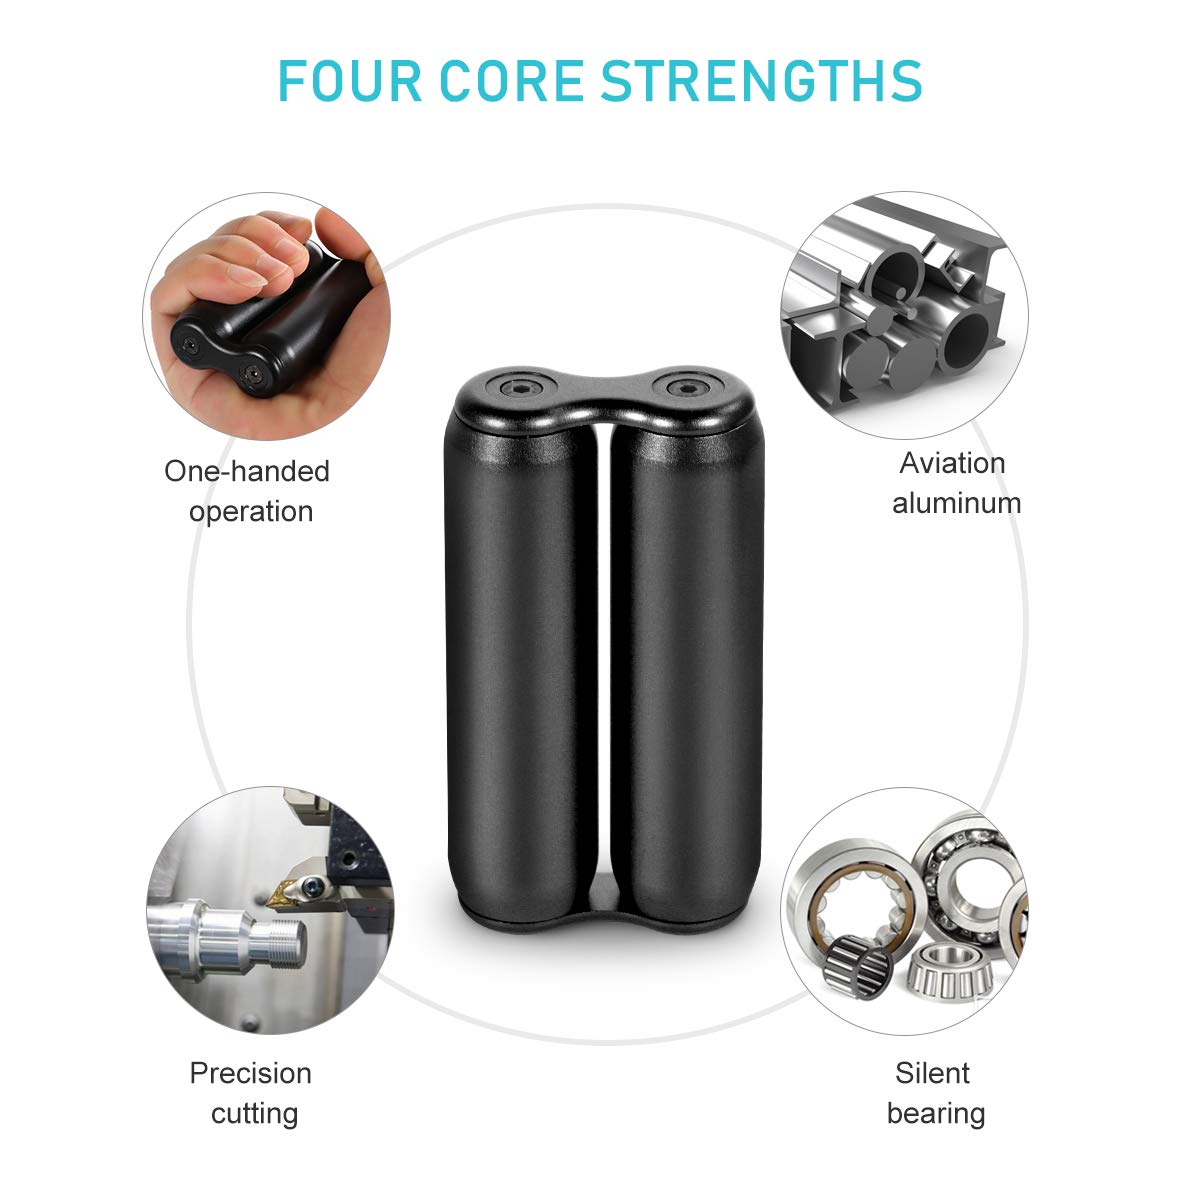 MuD-A Anti-Anxiety Toys,Handheld Fidget Toy for Adults,Relieving Stress Boredom ADHD Autism,Easy to Carry and Use (Black) by MuD-A (Image #3)